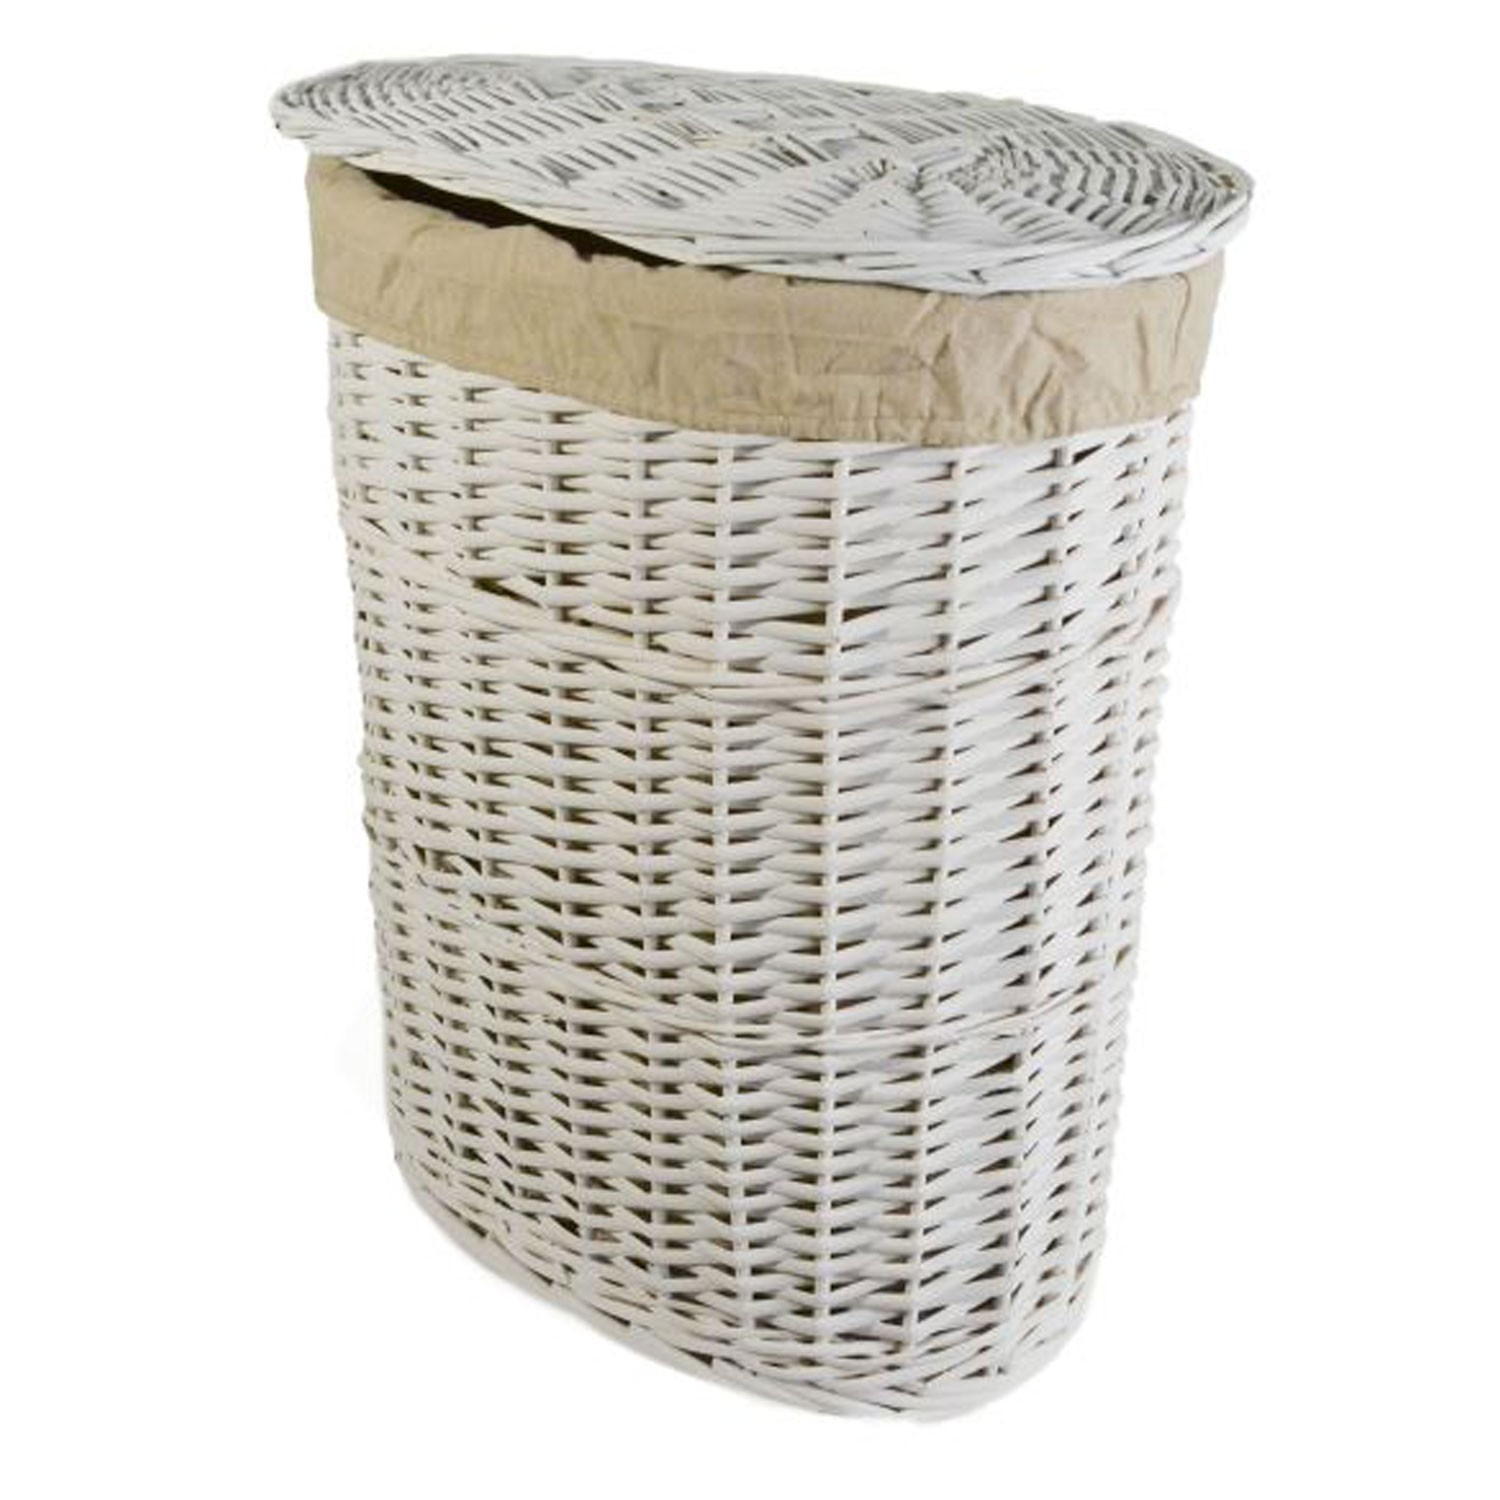 Oval Willow Small Laundry Basket White